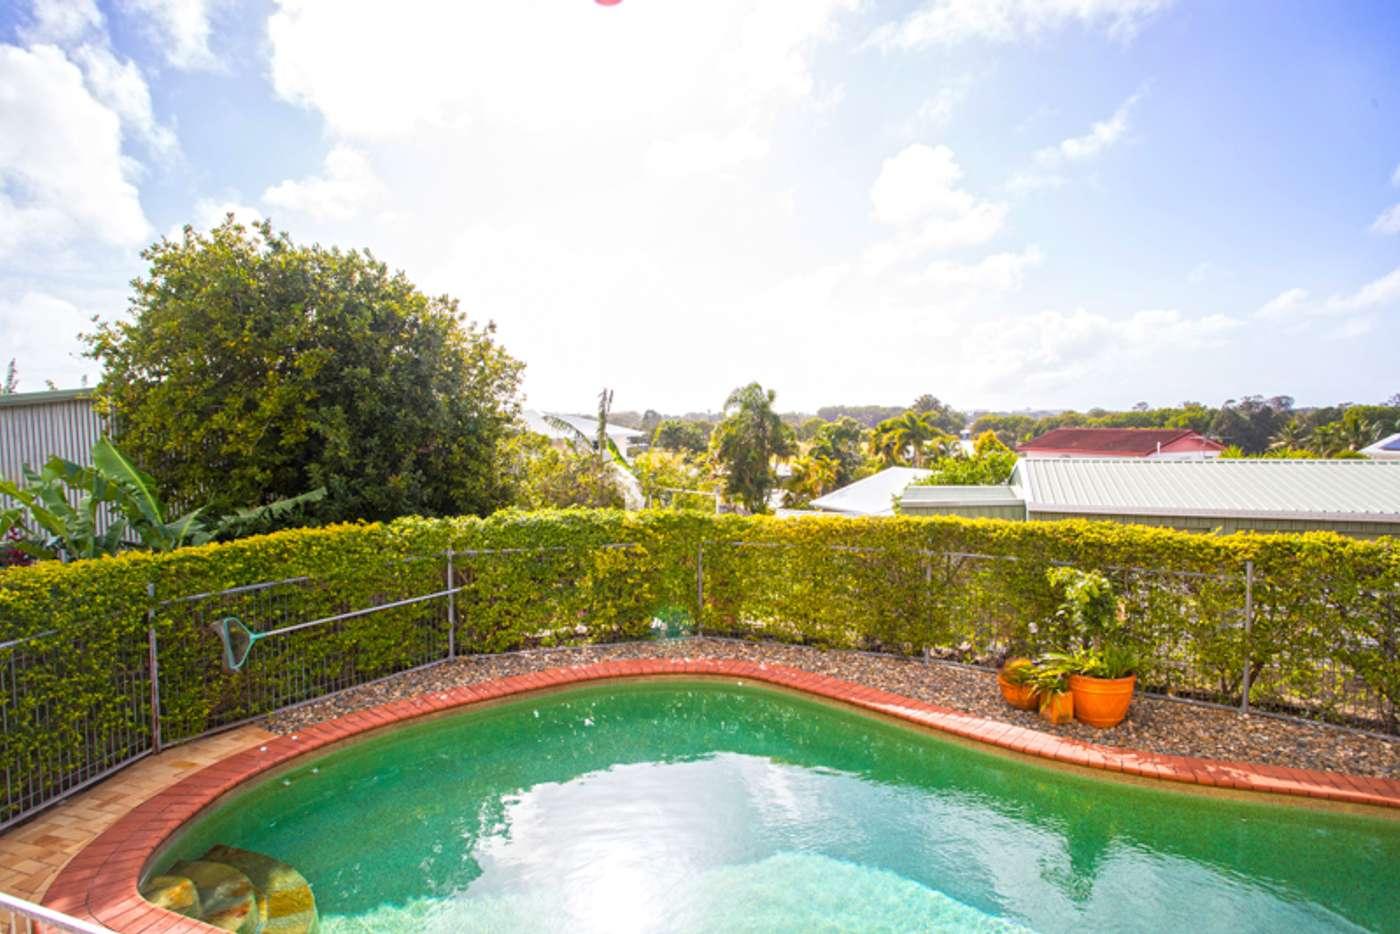 Main view of Homely house listing, 10 Galvin Street, Beaconsfield QLD 4740